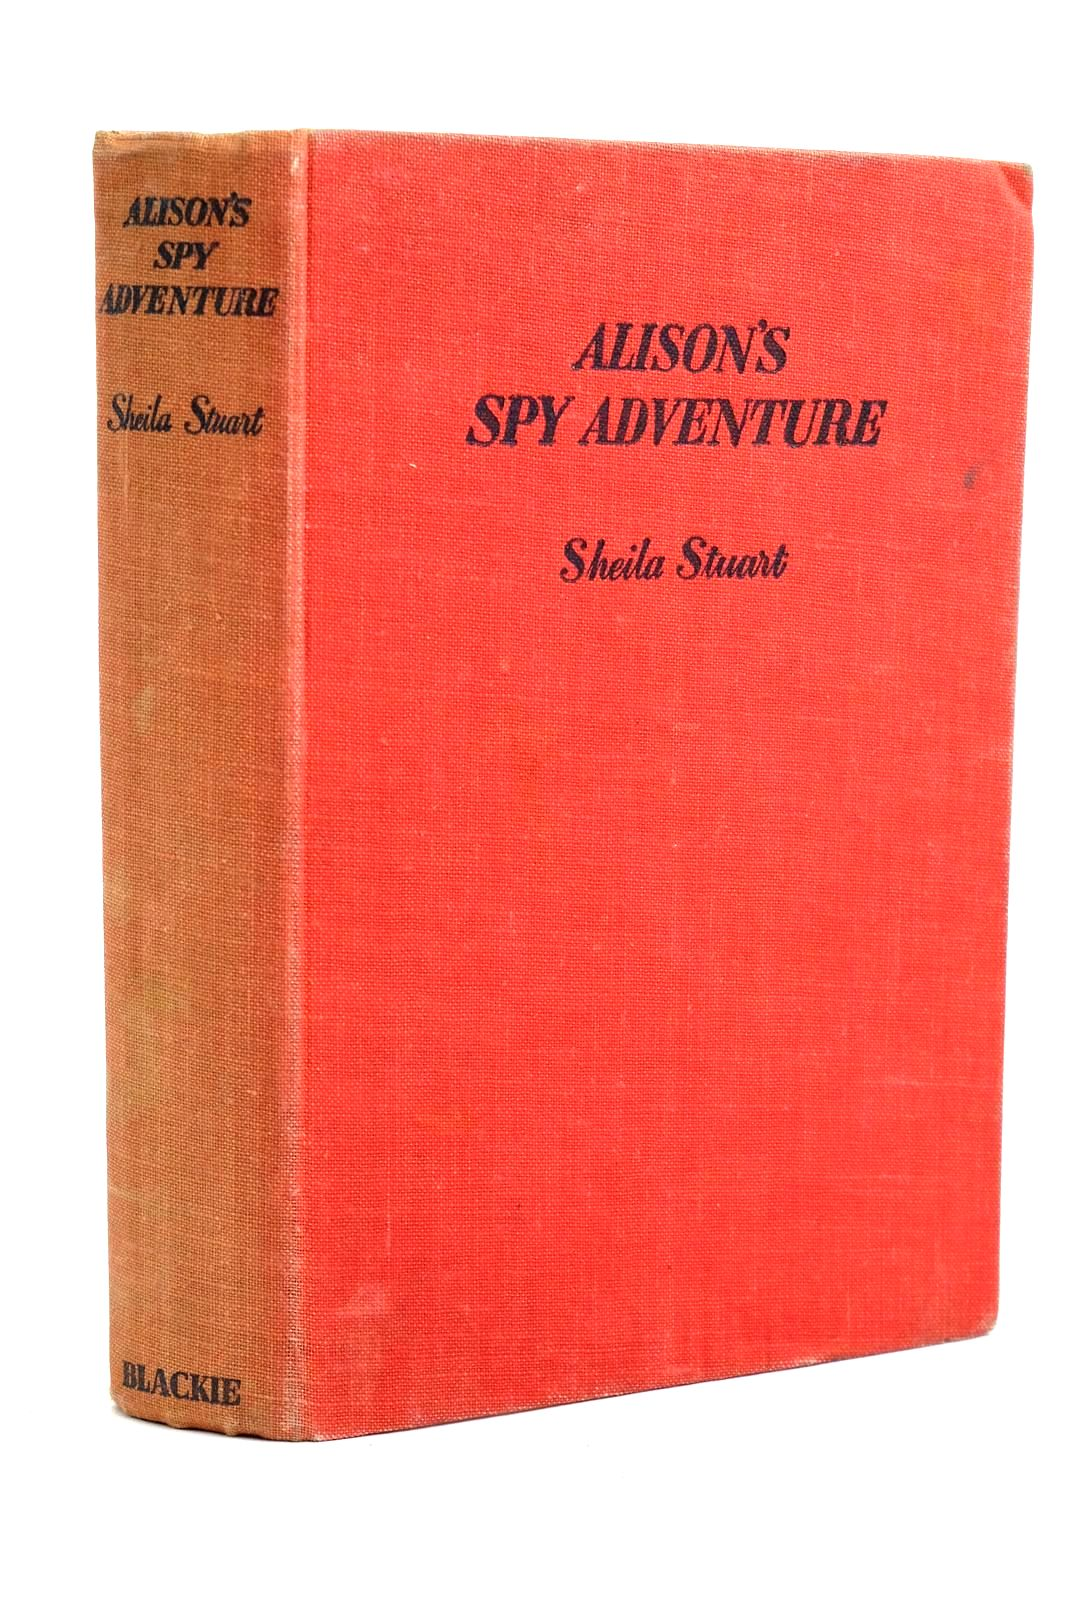 Photo of ALISON'S SPY ADVENTURE written by Stuart, Sheila illustrated by Dunlop, Gilbert published by Blackie & Son Ltd. (STOCK CODE: 1320711)  for sale by Stella & Rose's Books